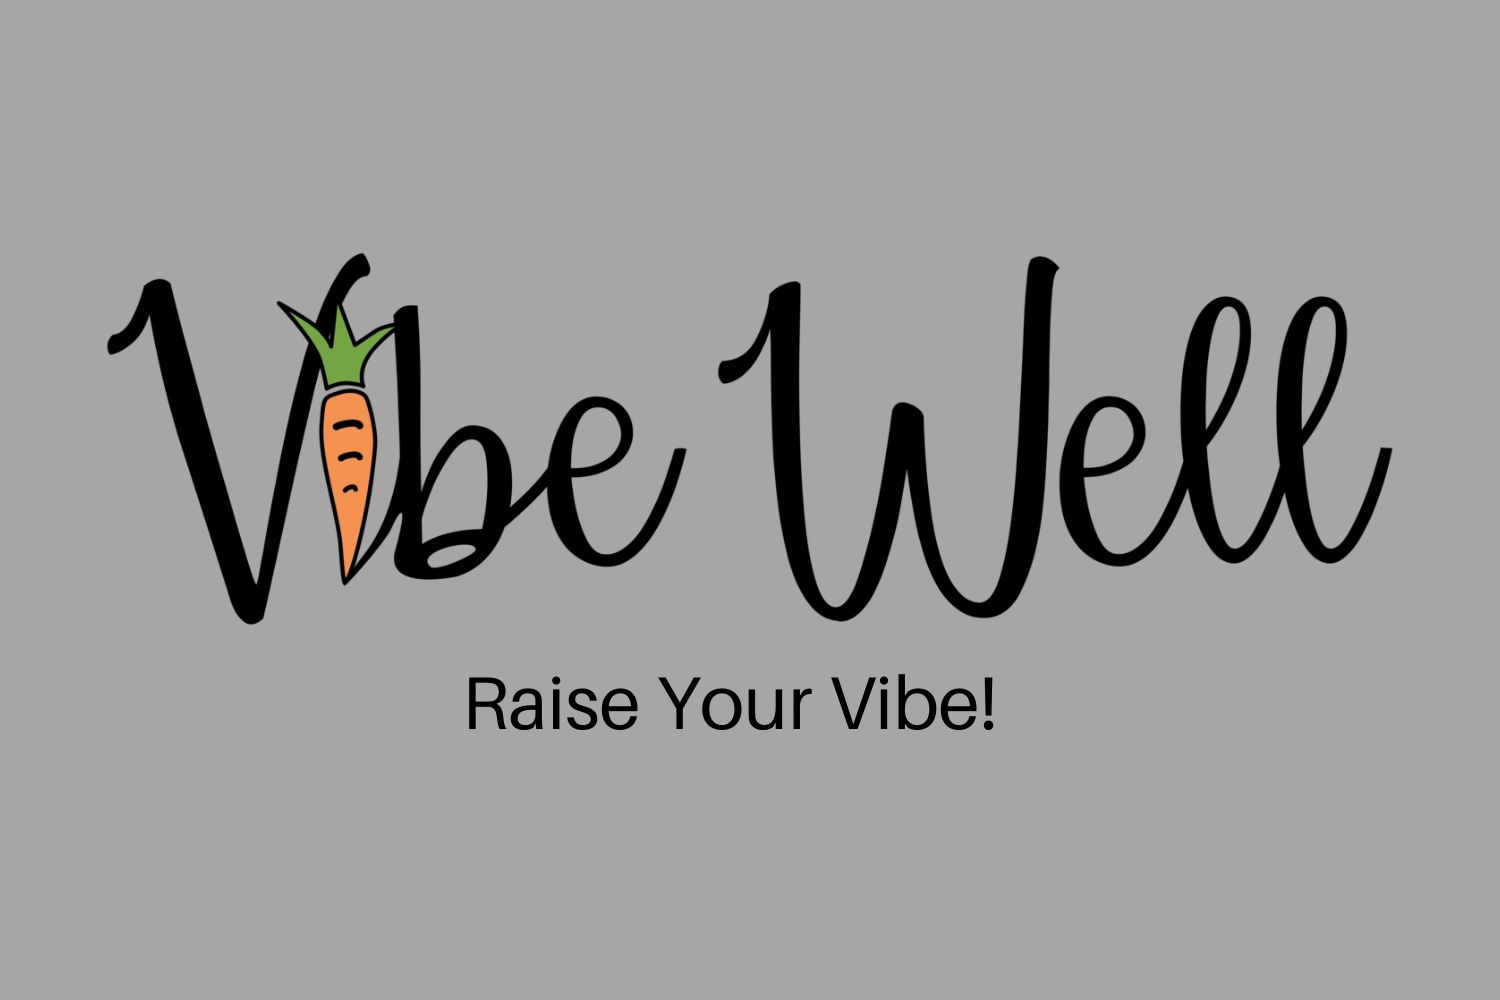 Thank you to Vibe Well for supporting the Fenton InPrint!